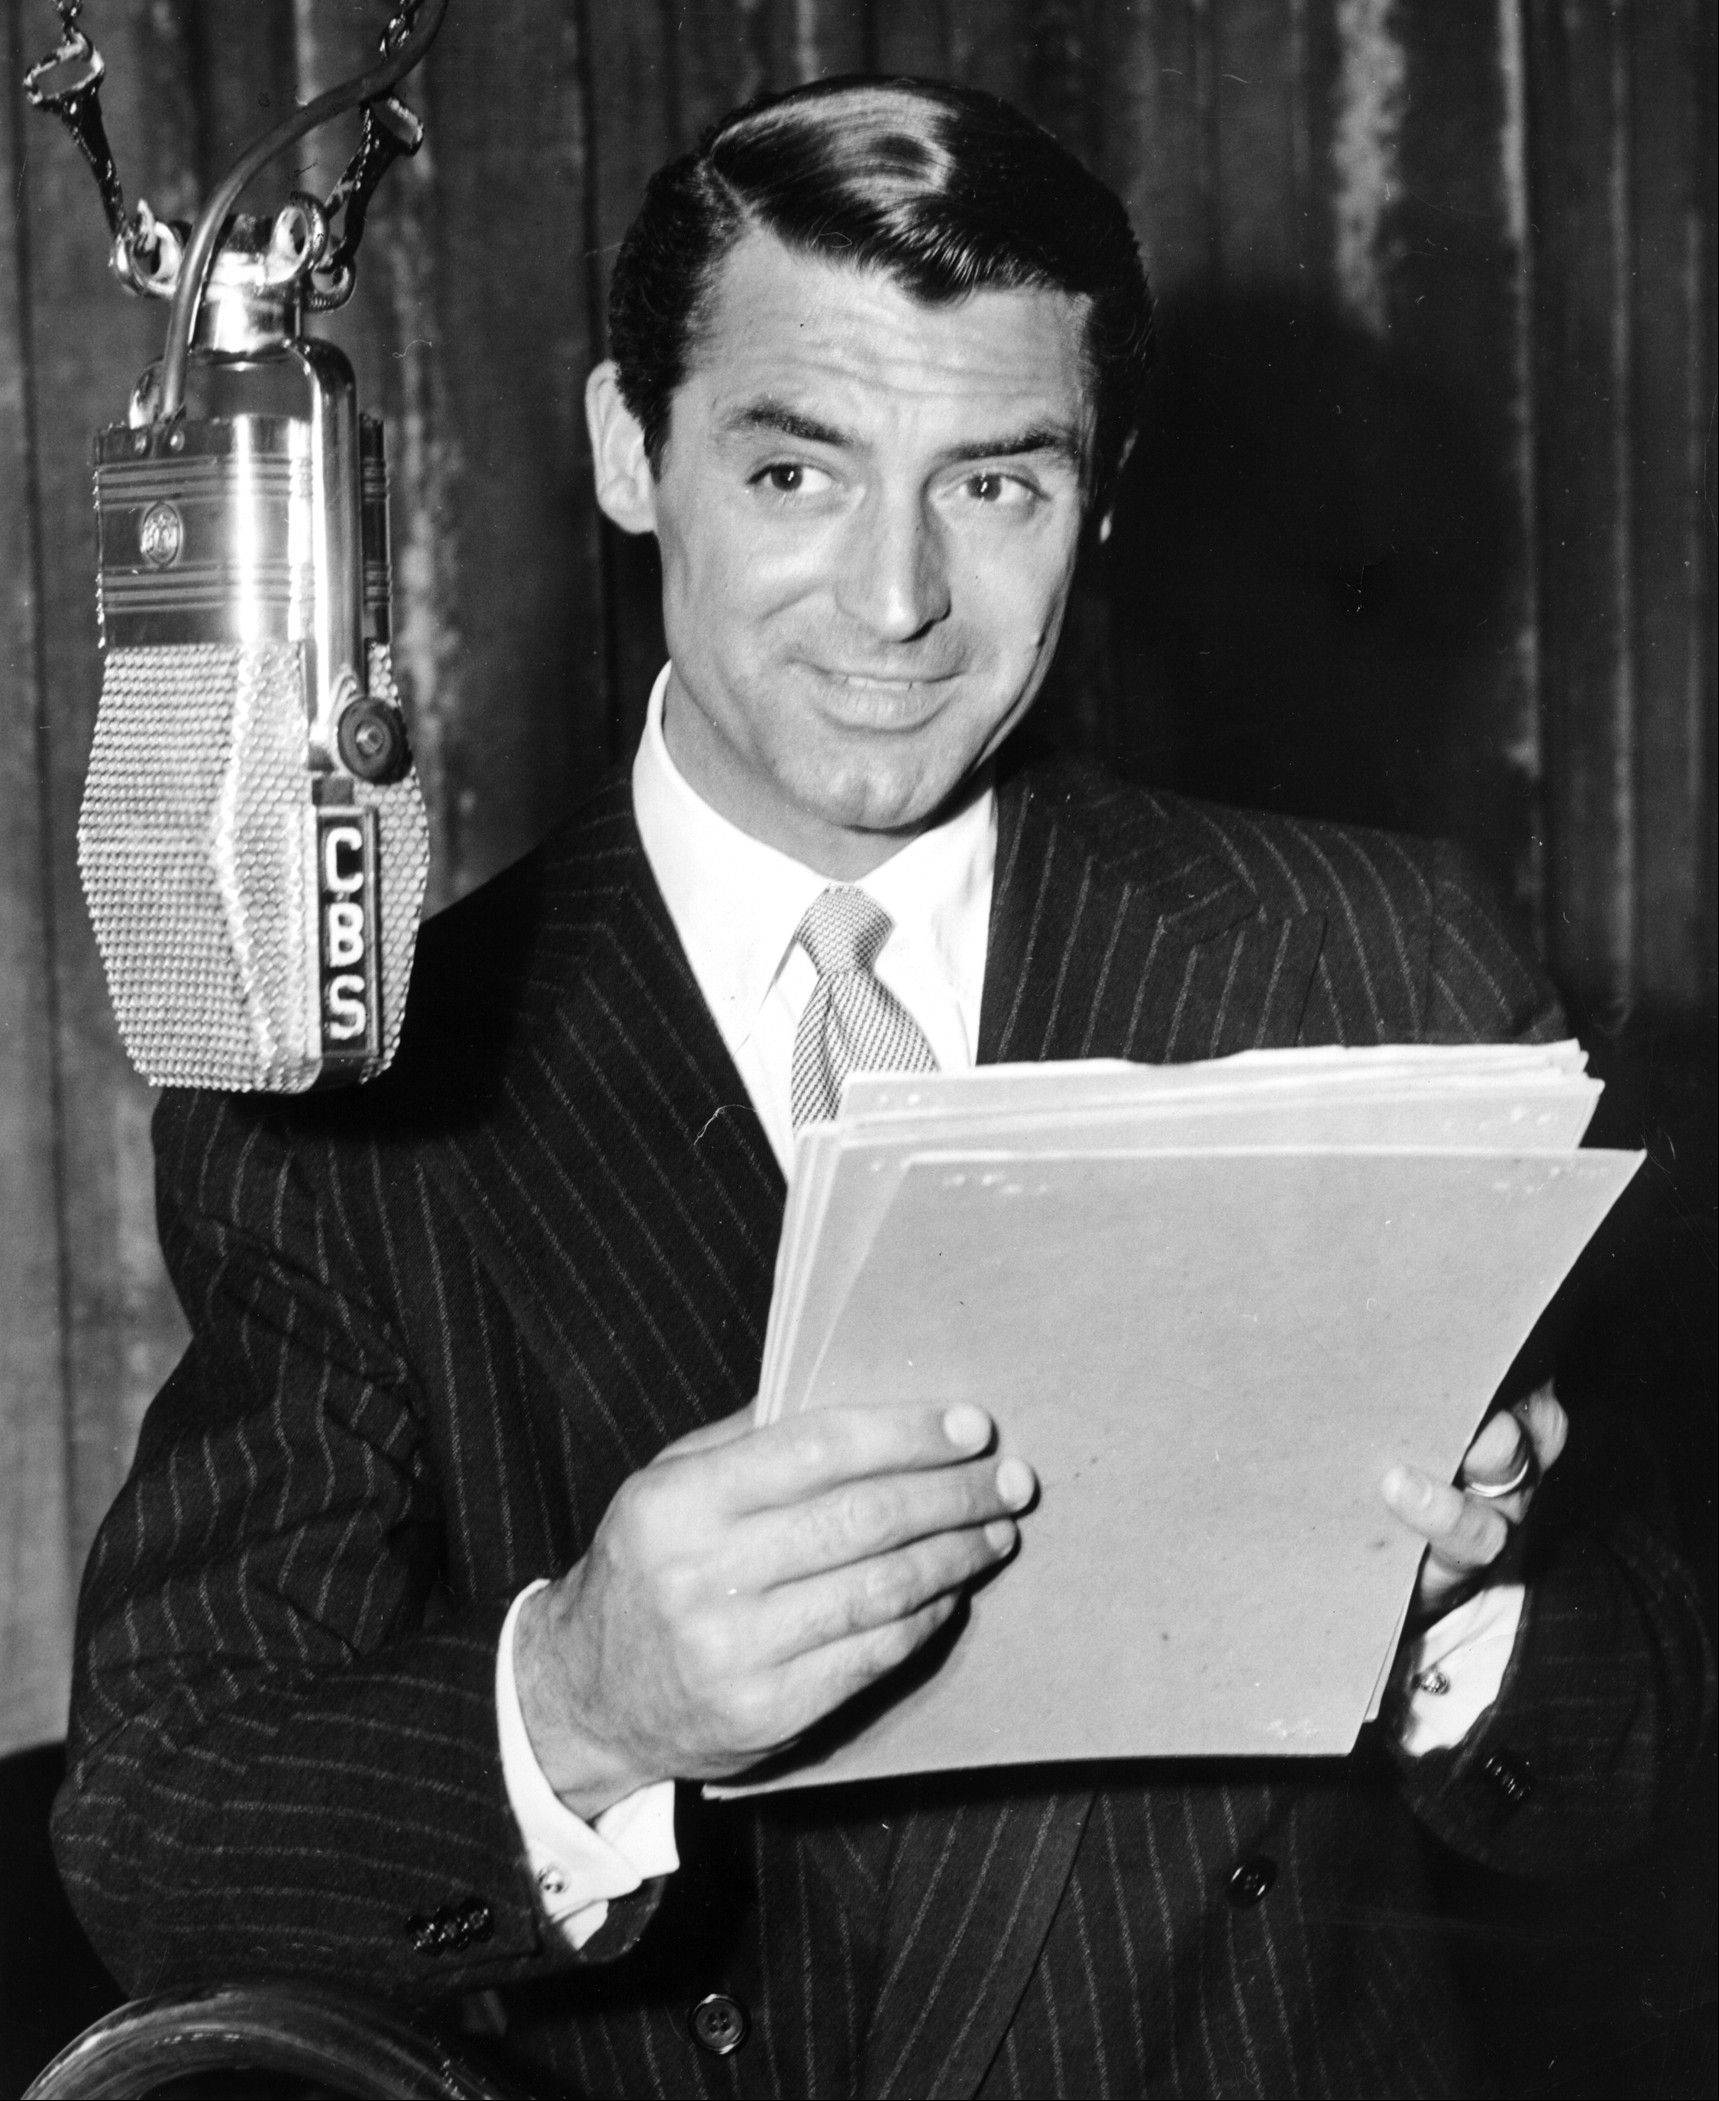 Actor Cary Grant was a popular radio star during the Golden Age of Radio.